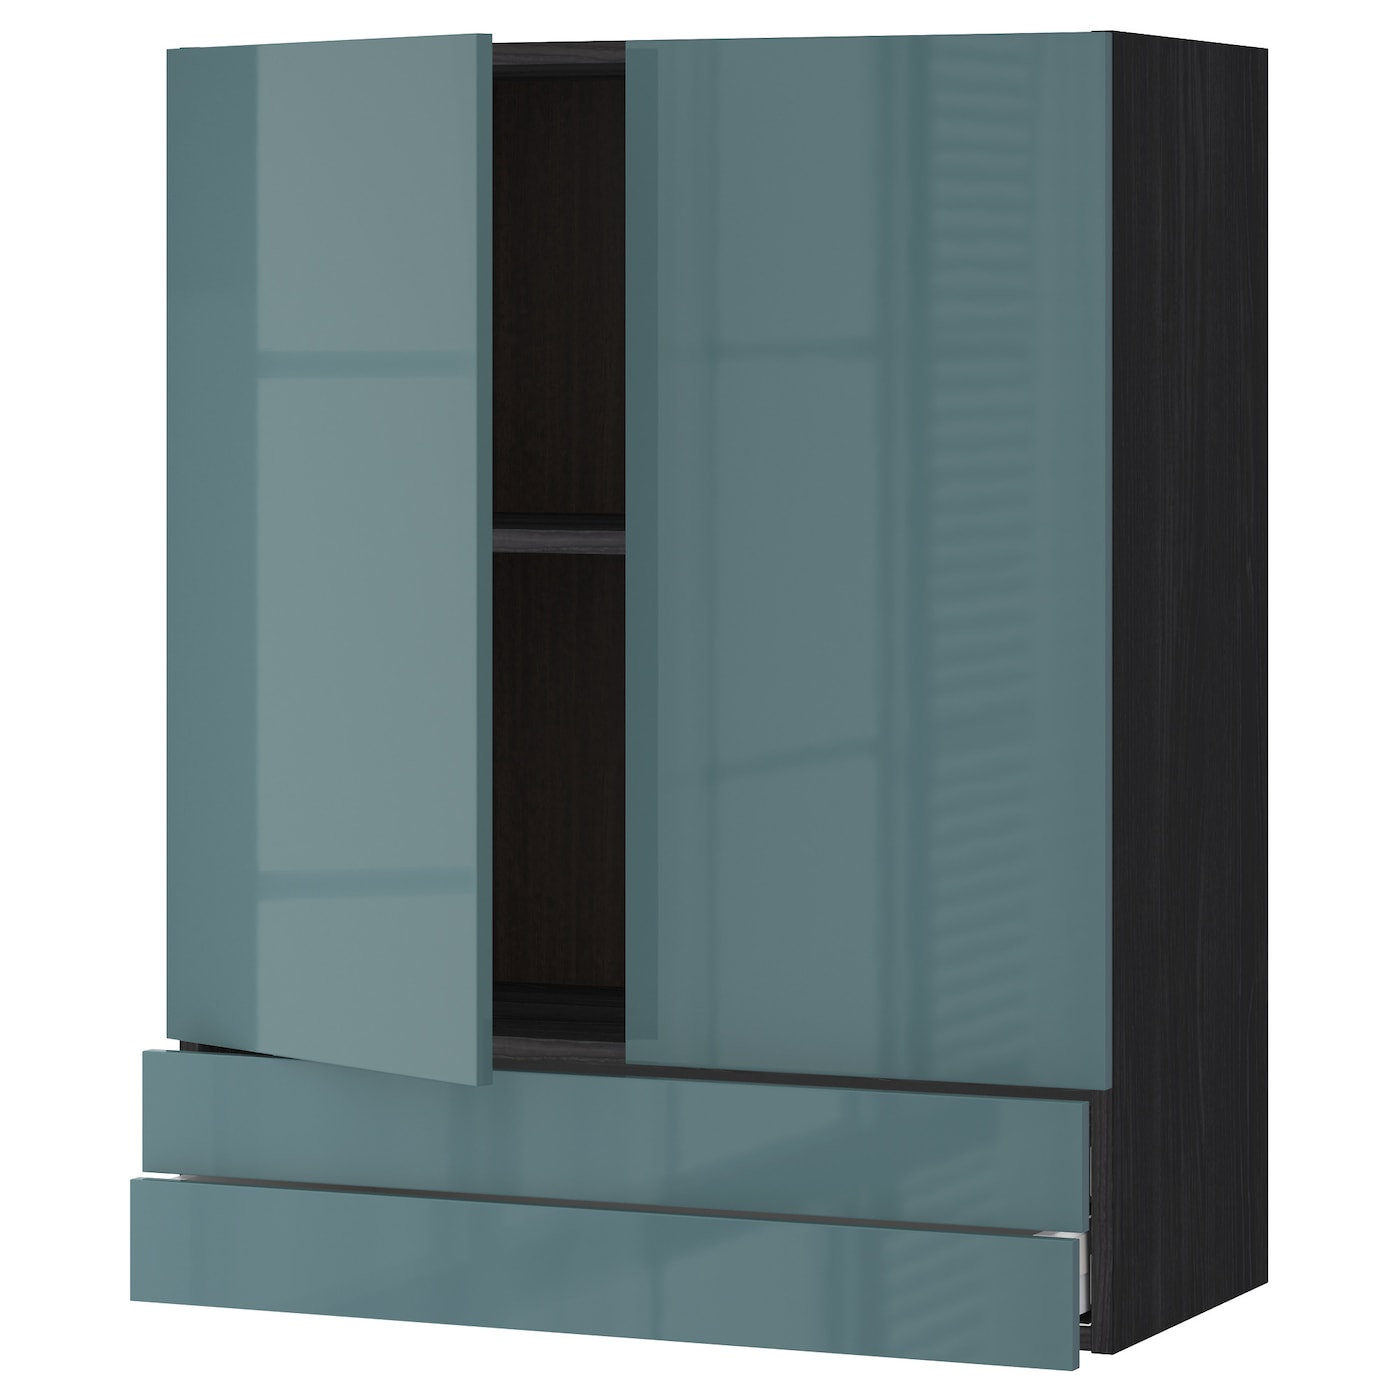 IKEA METOD/MAXIMERA wall cabinet w 2 doors/2 drawers Sturdy frame construction, 18 mm thick.